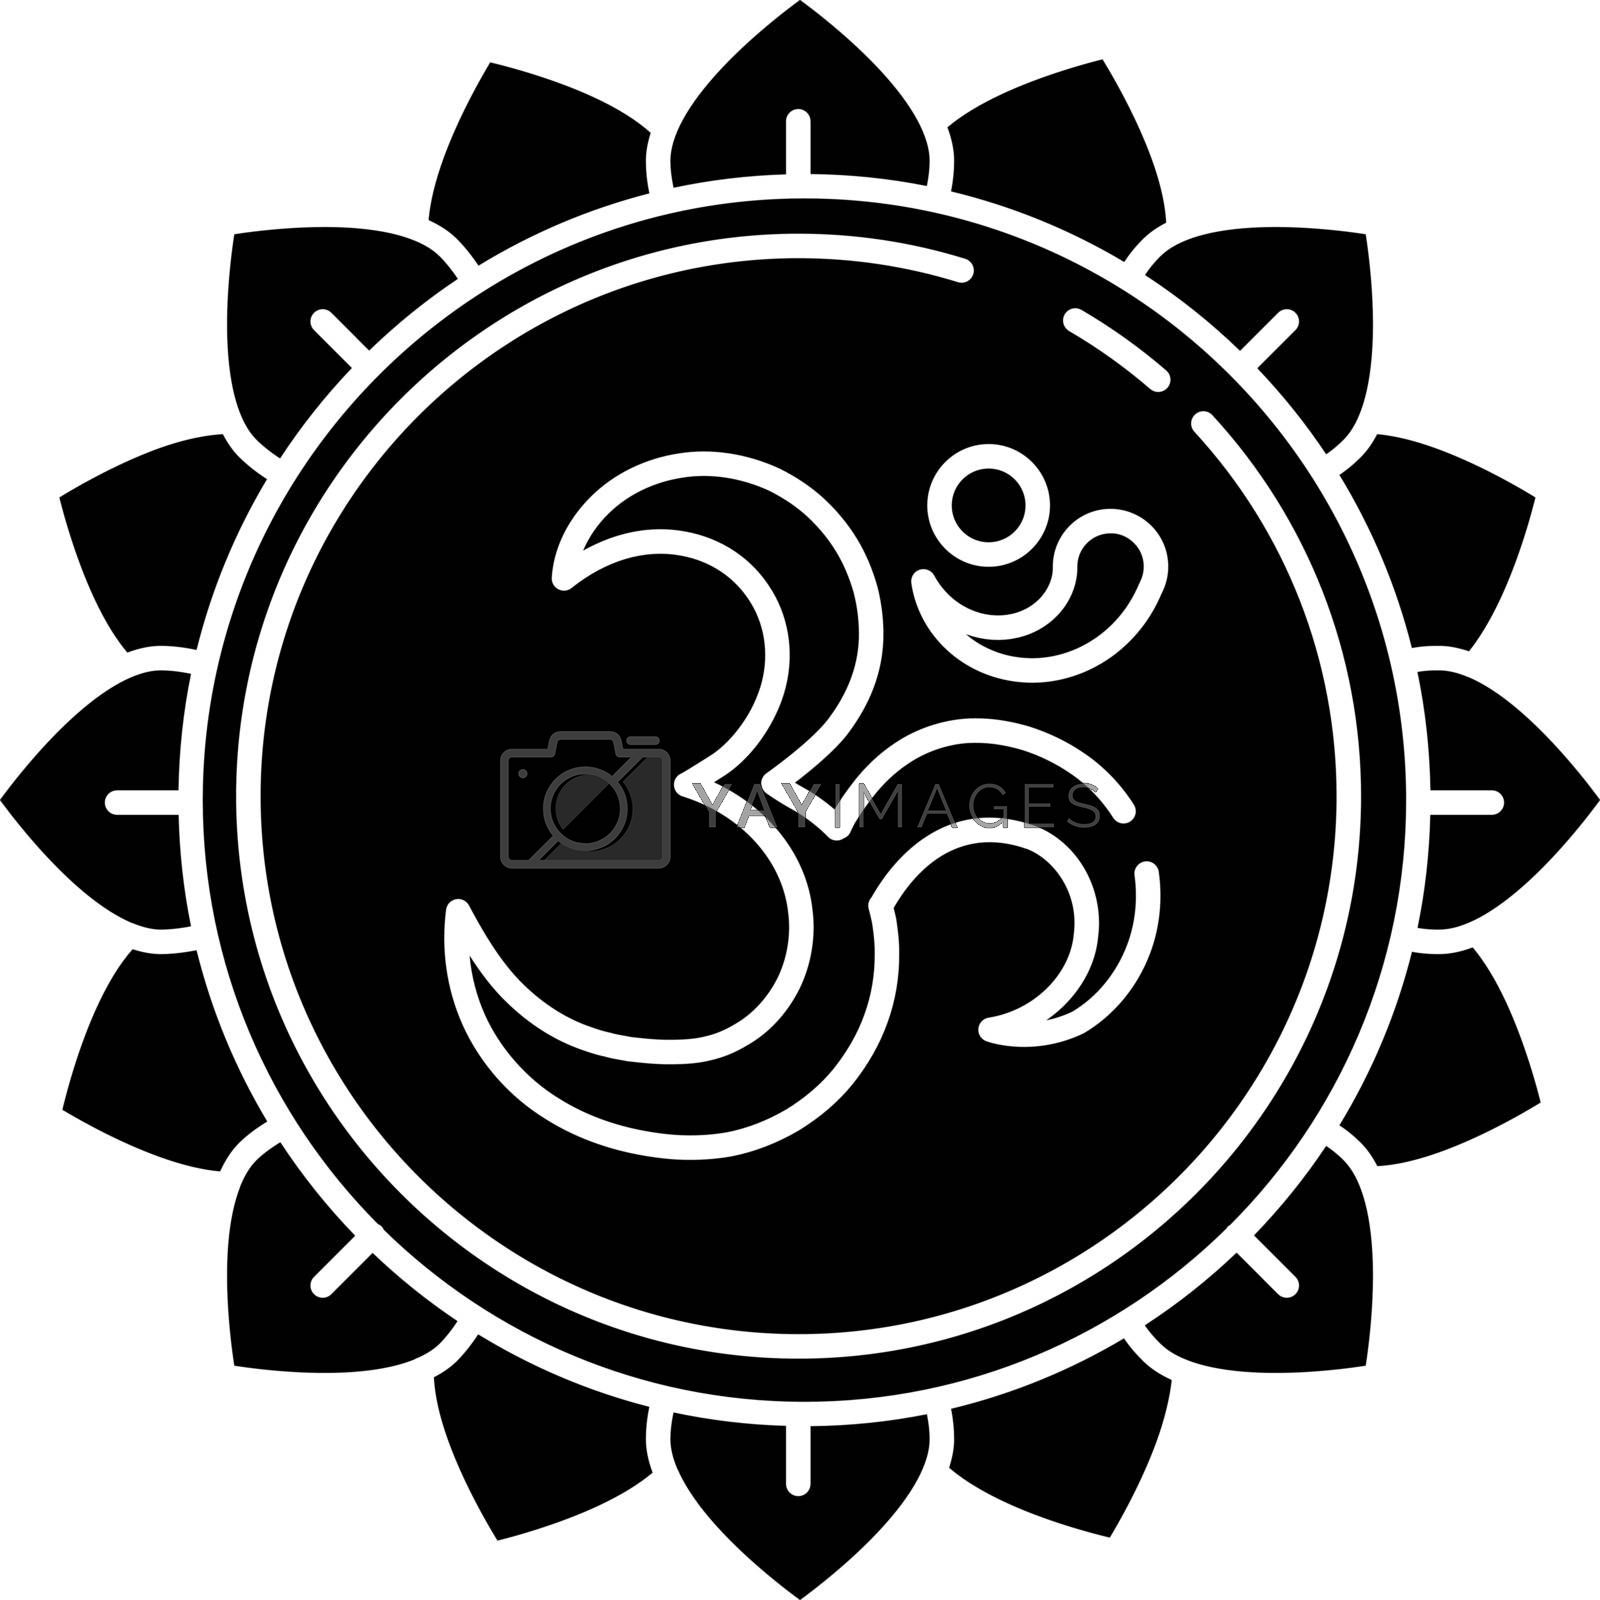 Om black glyph icon. Aum visual representation. Sacred syllable. Sound of universe. Spiritual symbol in Hinduism. Divine energy. Silhouette symbol on white space. Vector isolated illustration